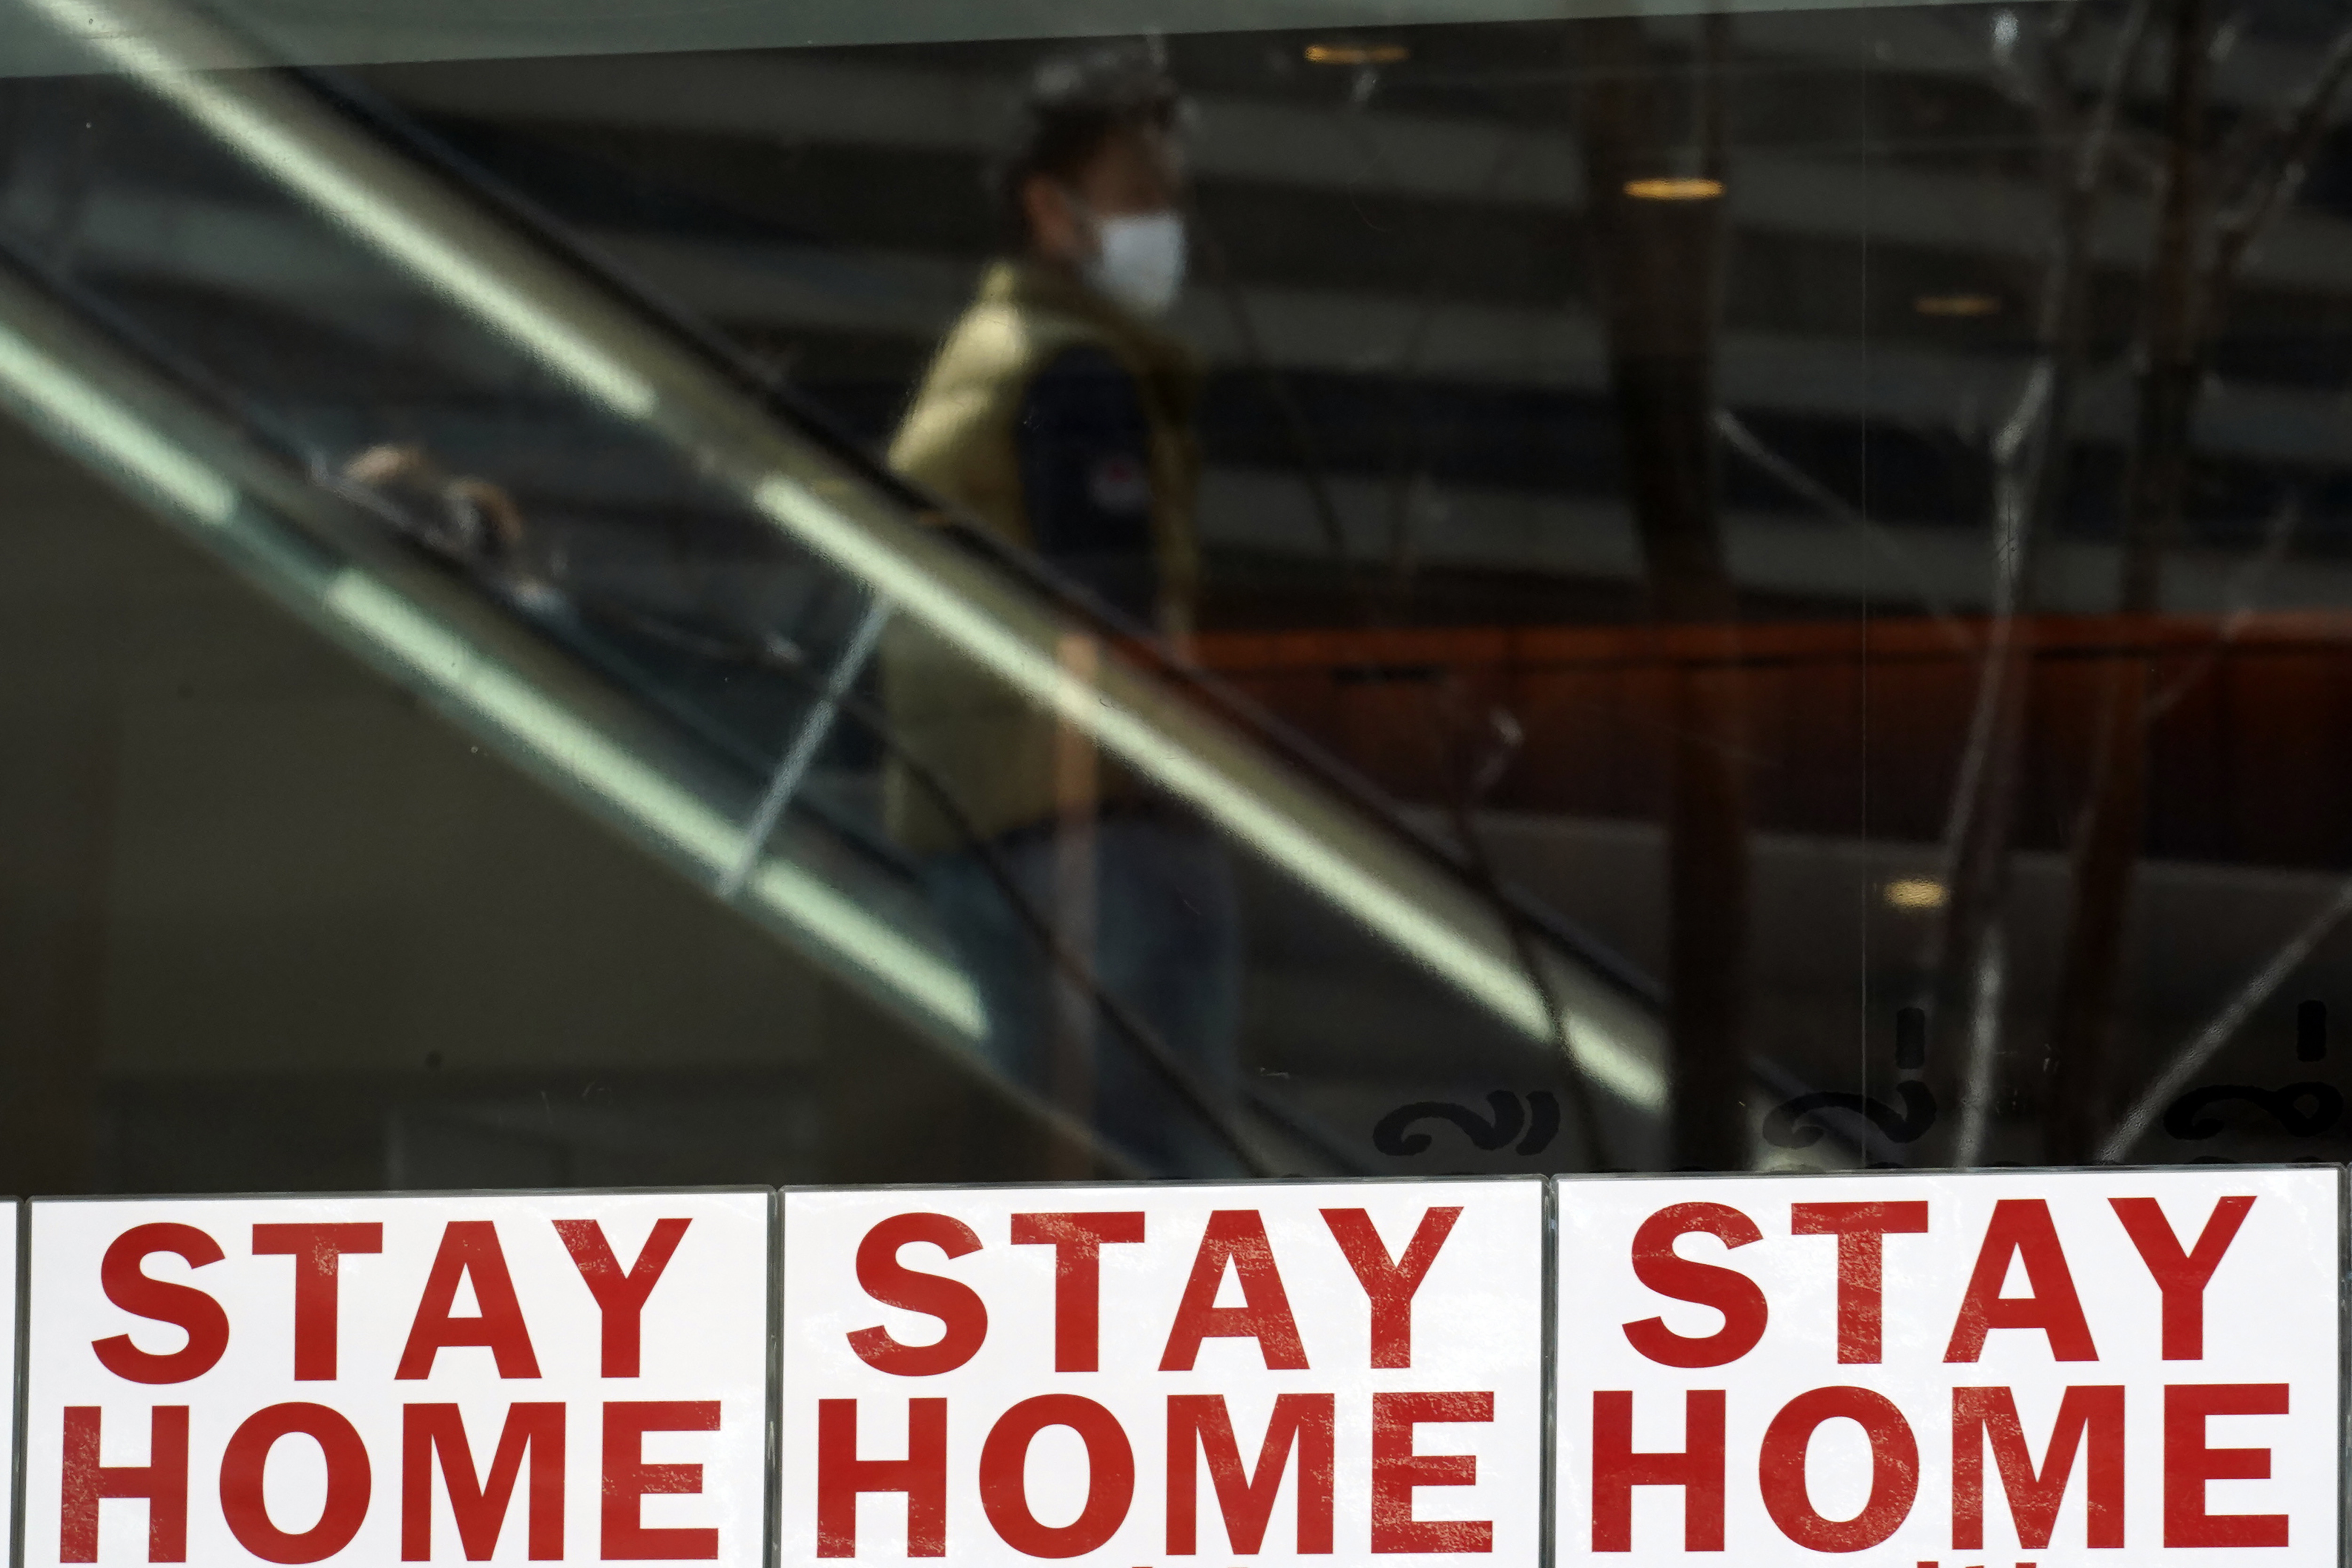 Signs urge people to stay home to help stop the spread of the novel coronavirus in Tokyo, Japan, on April 10.